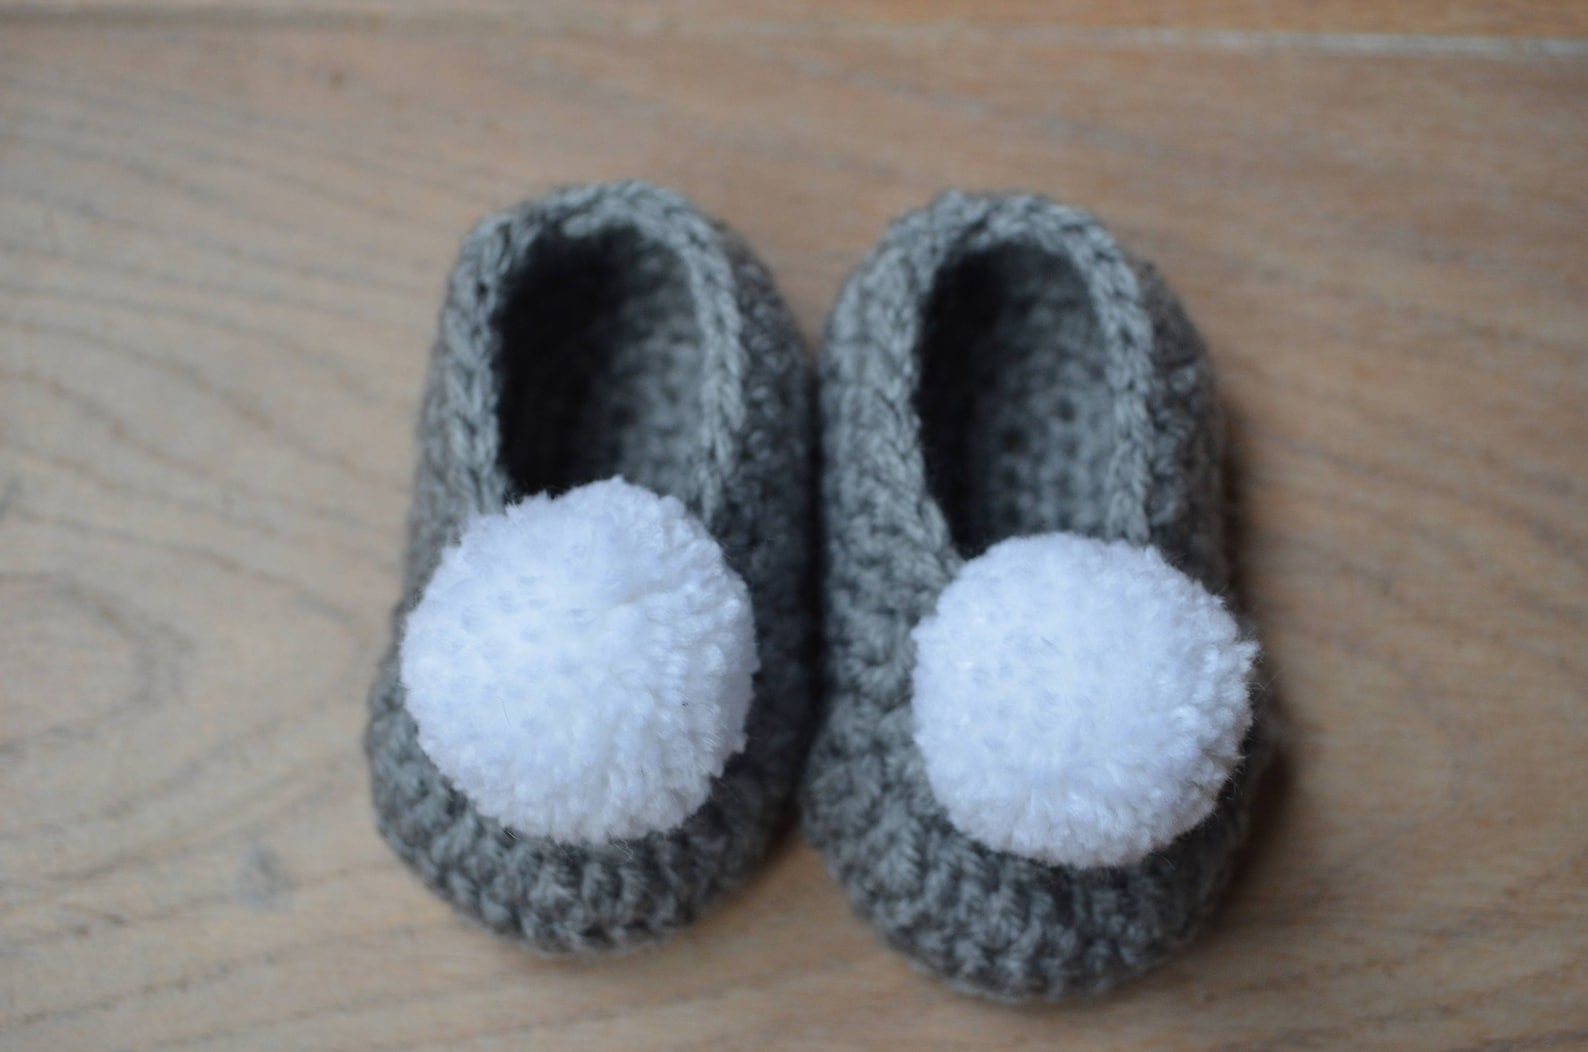 crochet ballerina - baby ballet shoes - crochet baby shoes with pompom- pregnancy announcement grandparents - gift baby -grey ne